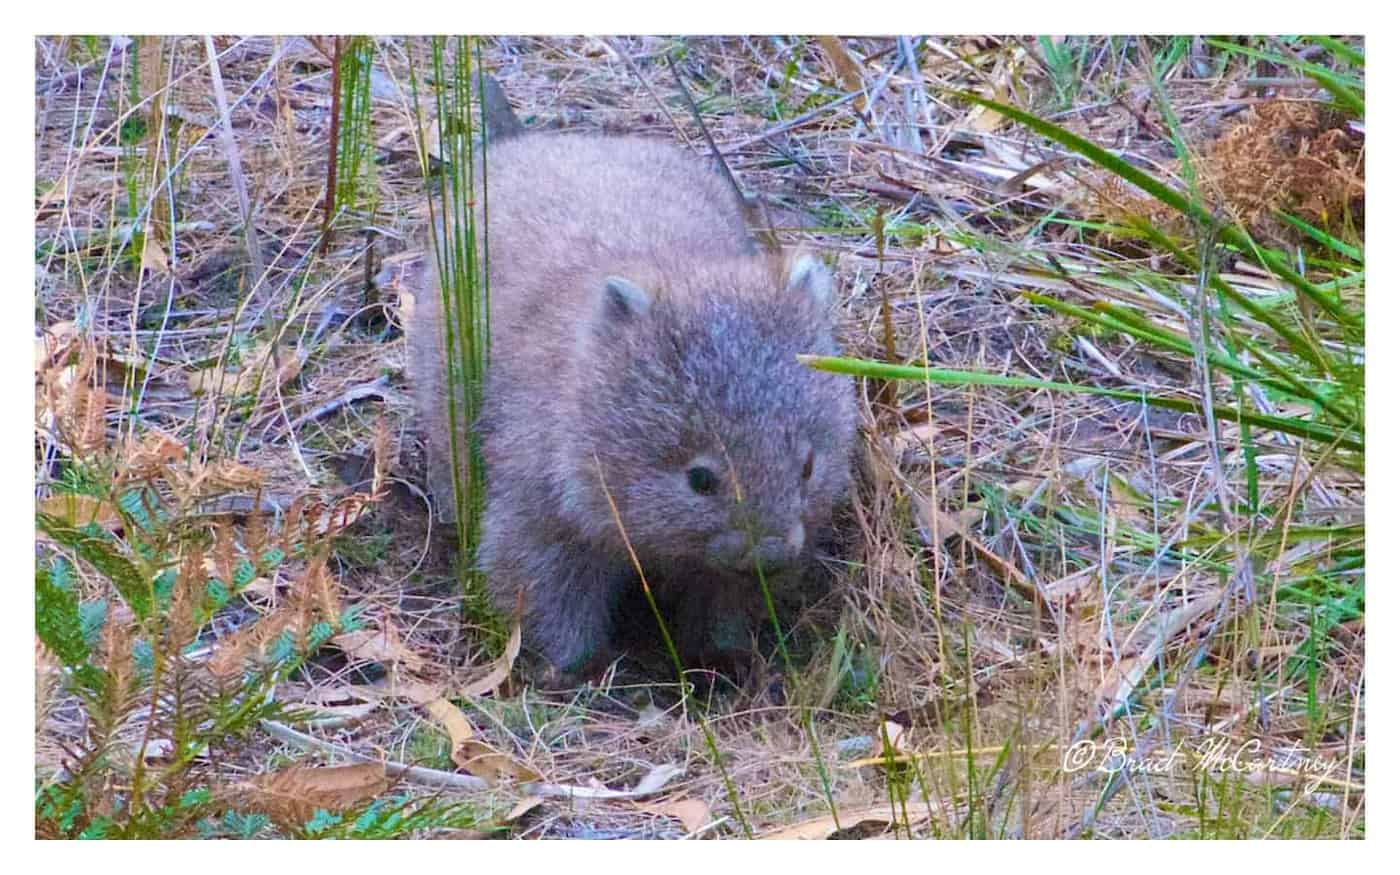 Wombat near Encampment